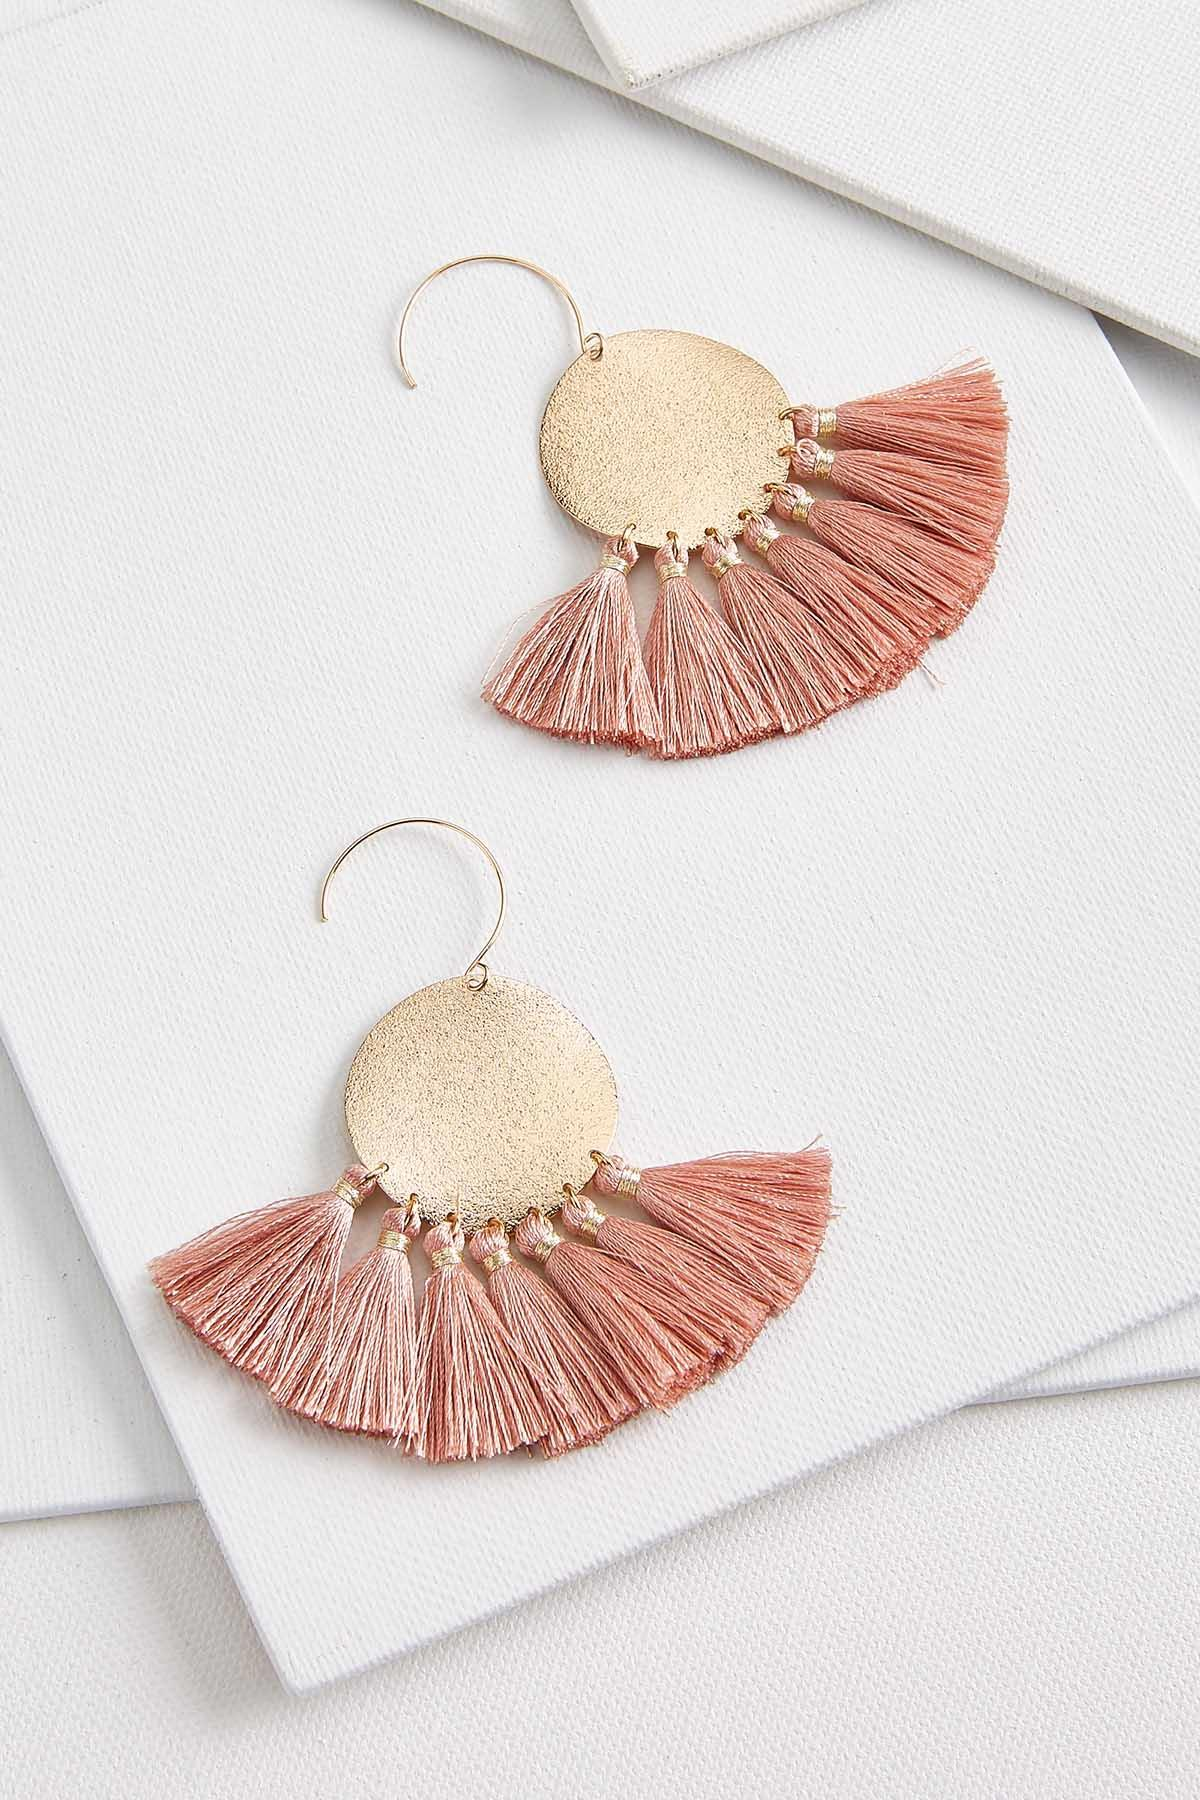 Fancy Fringe Earrings